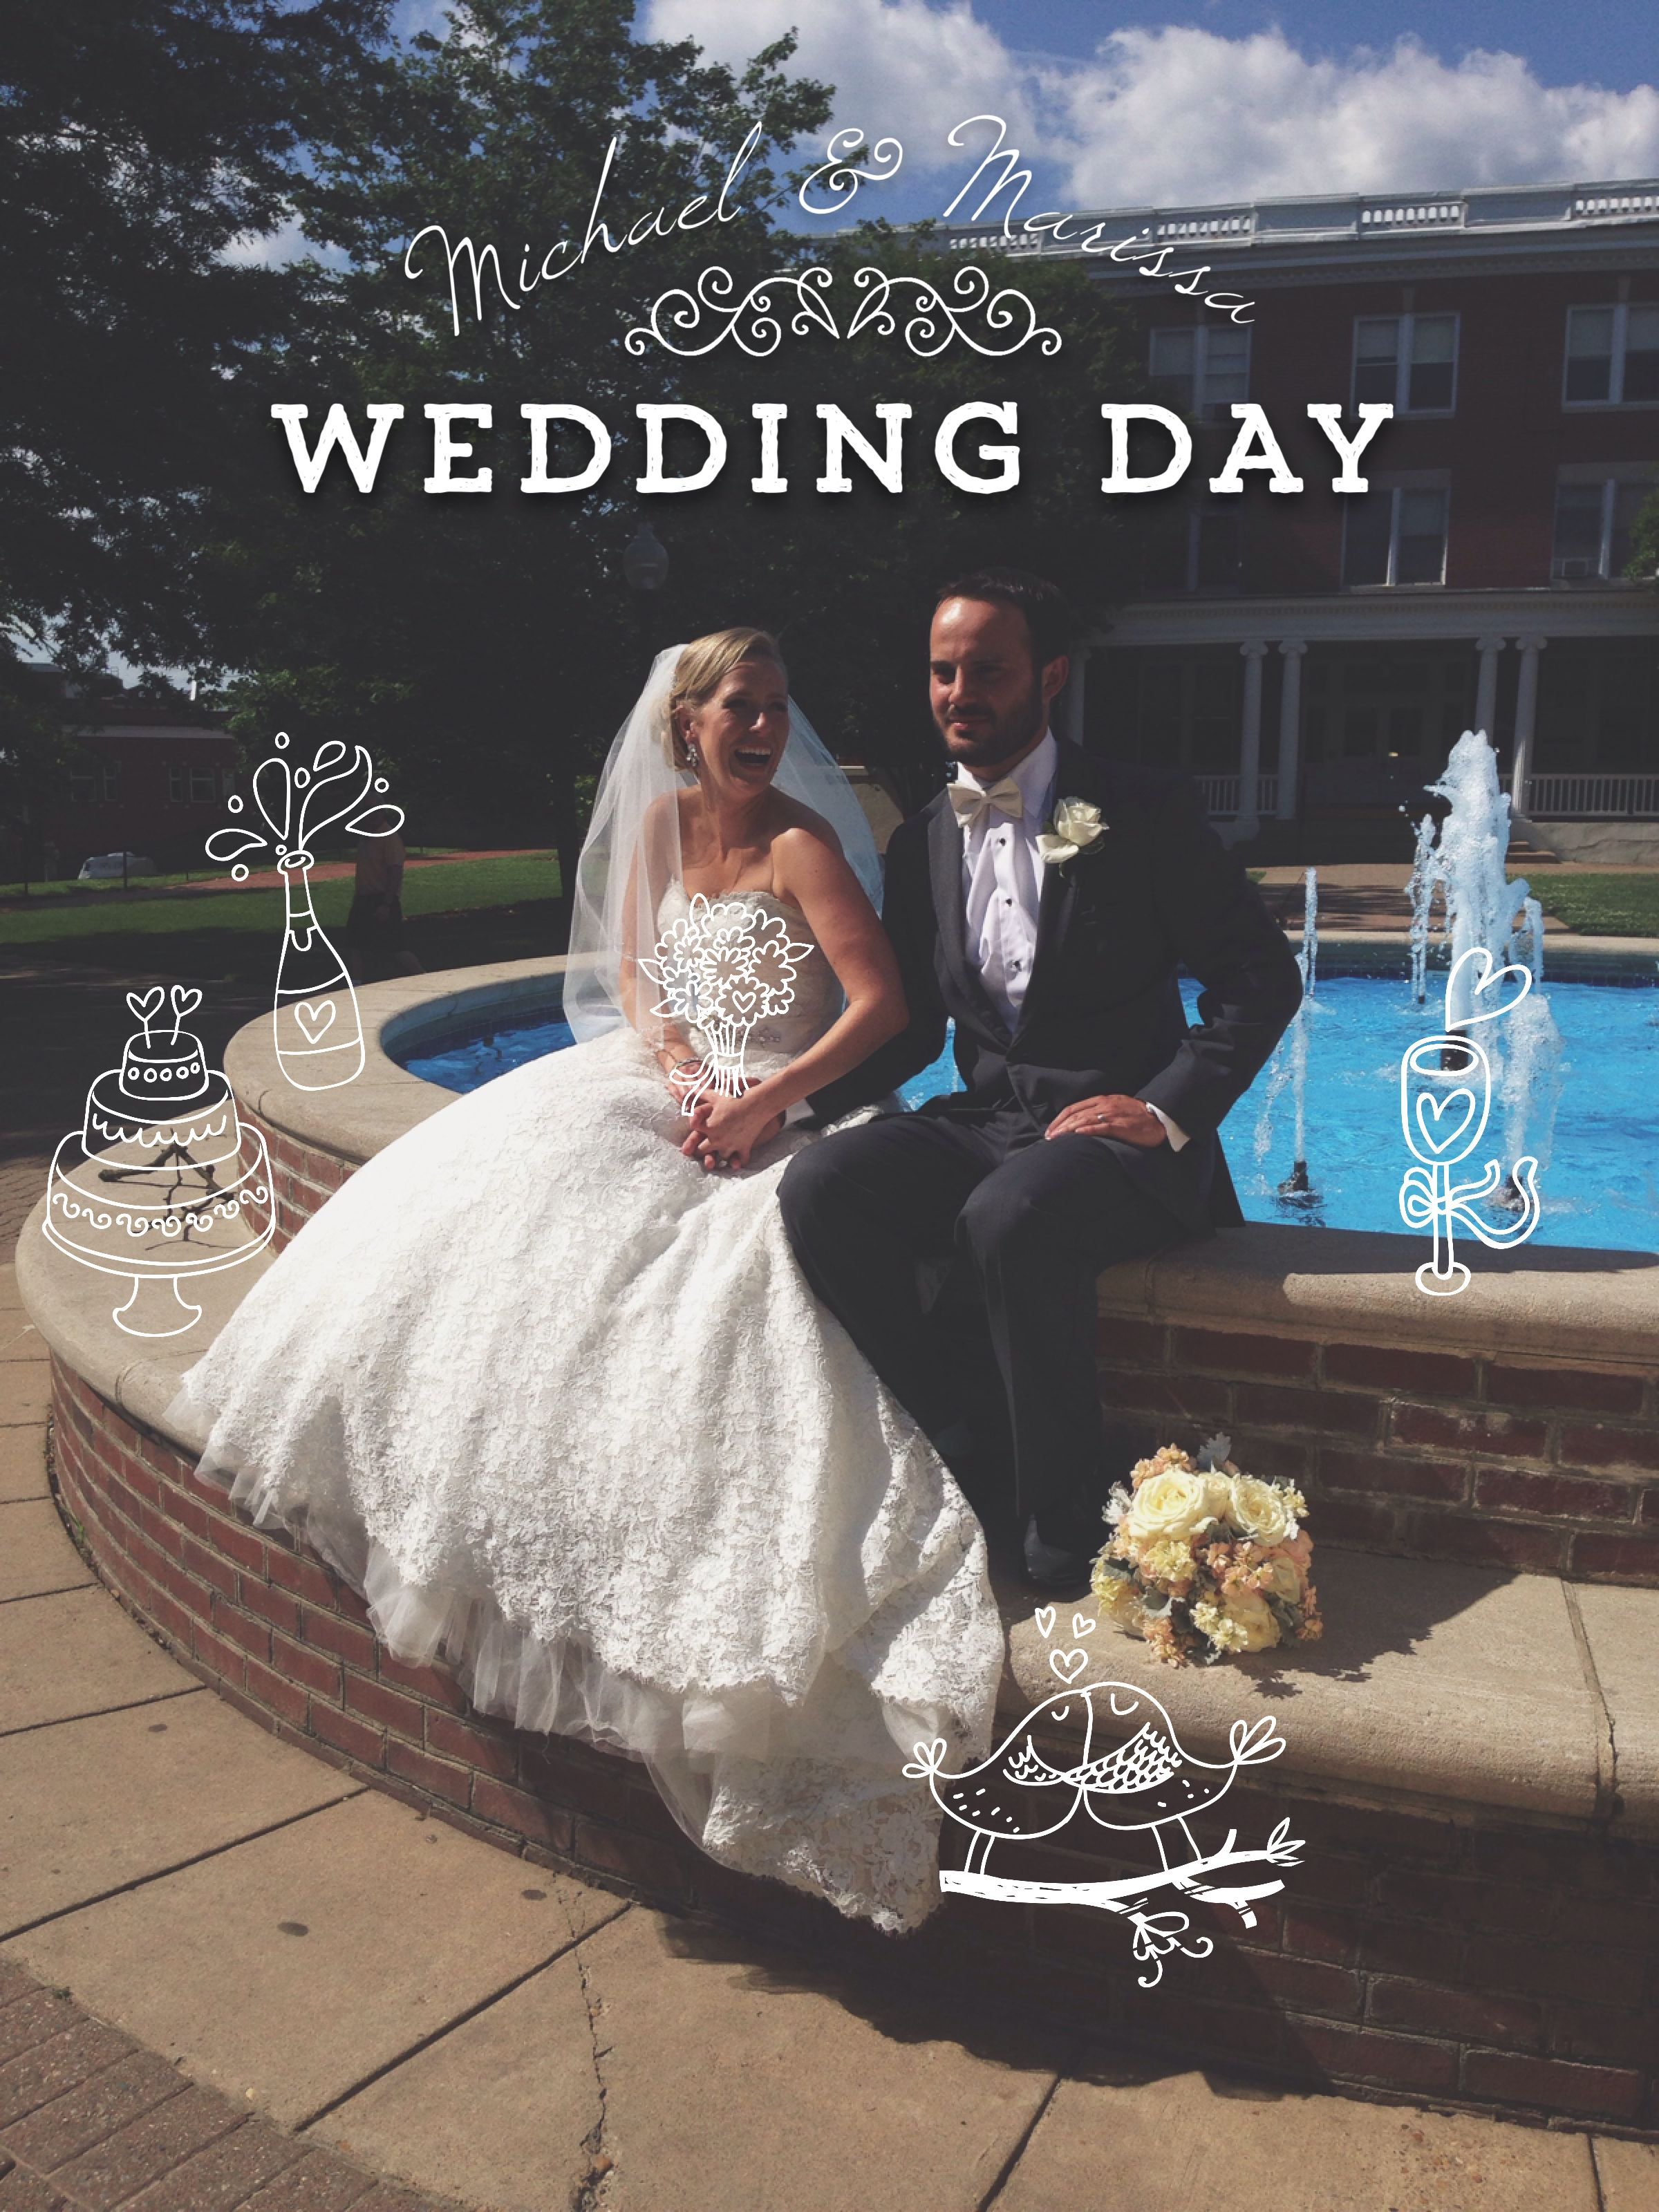 Piclab Hd Is A Perfect Tool To Commemorate Weddings